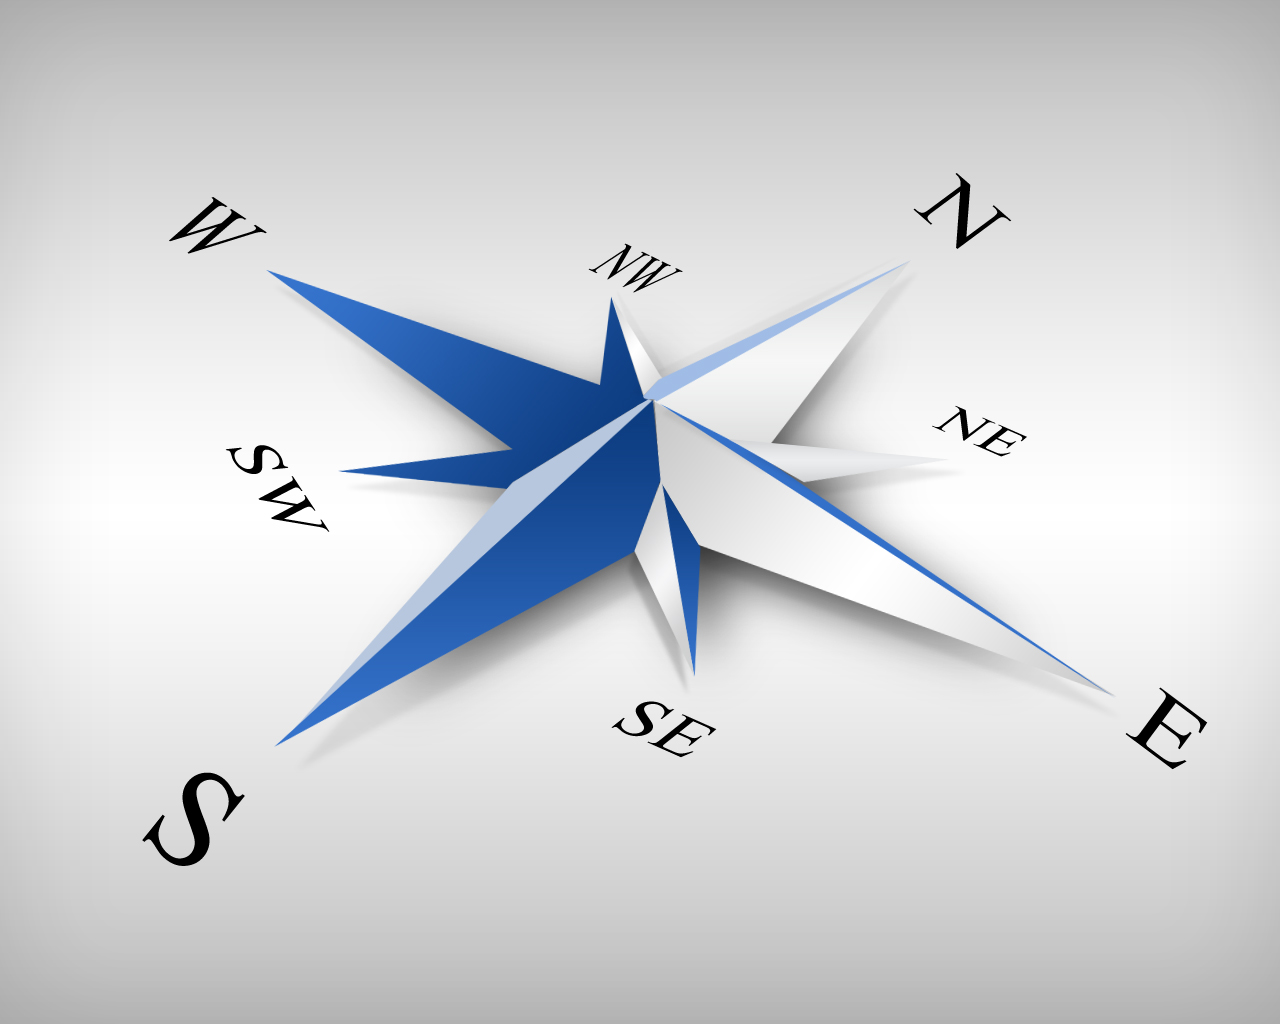 Compass with the different coordinated in blue and a white background to represent this class